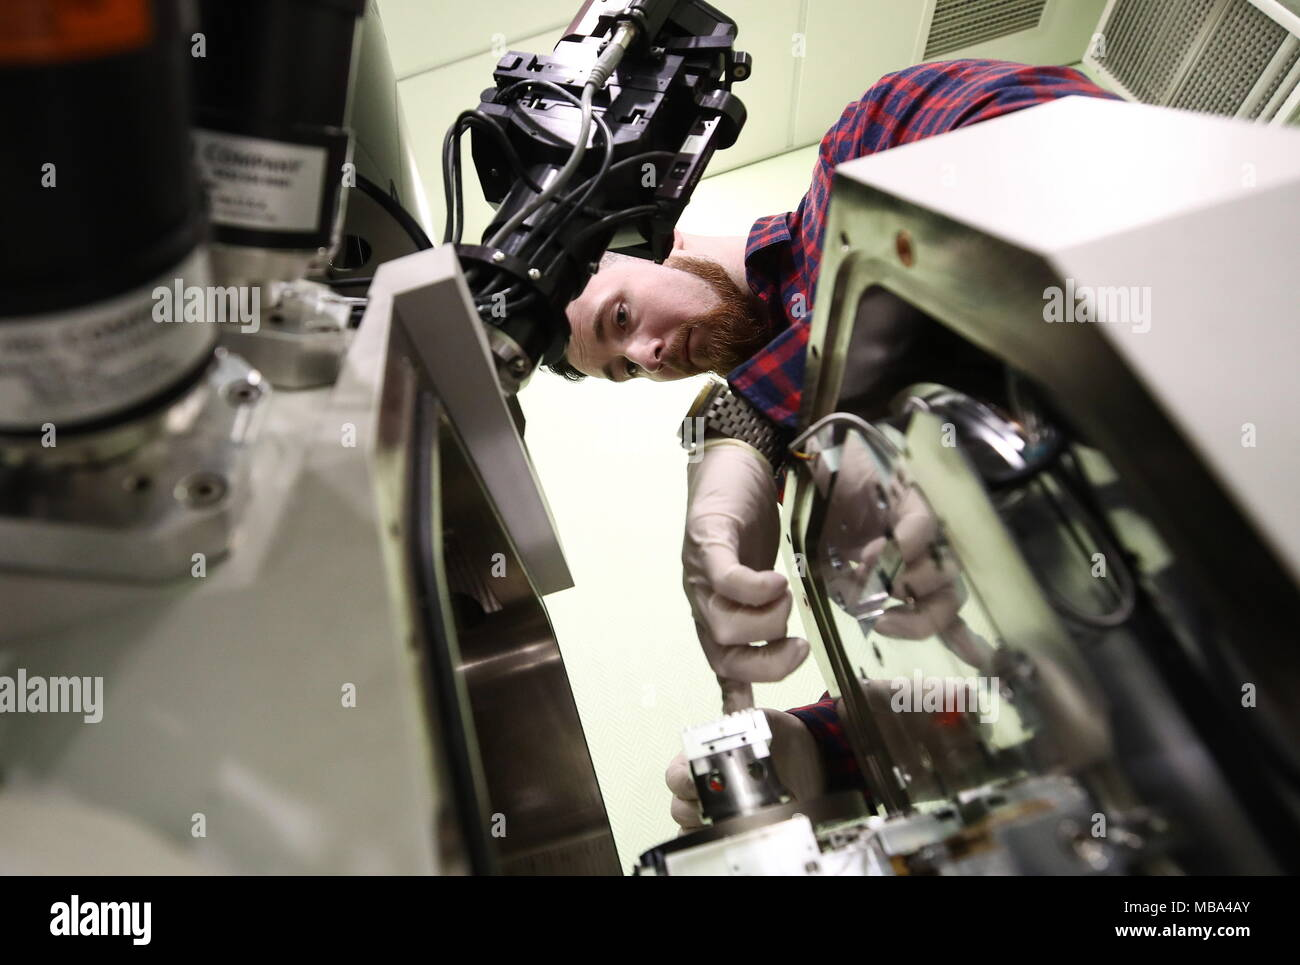 Moscow, Russia. 06th Apr, 2018. MOSCOW, RUSSIA - APRIL 6, 2018: An employee puts a study sample into a scanning electron microscope (SEM) at an electron microscopy laboratory of the Kurchatov Institute National Research Center. Valery Sharifulin/TASS Credit: ITAR-TASS News Agency/Alamy Live News - Stock Image